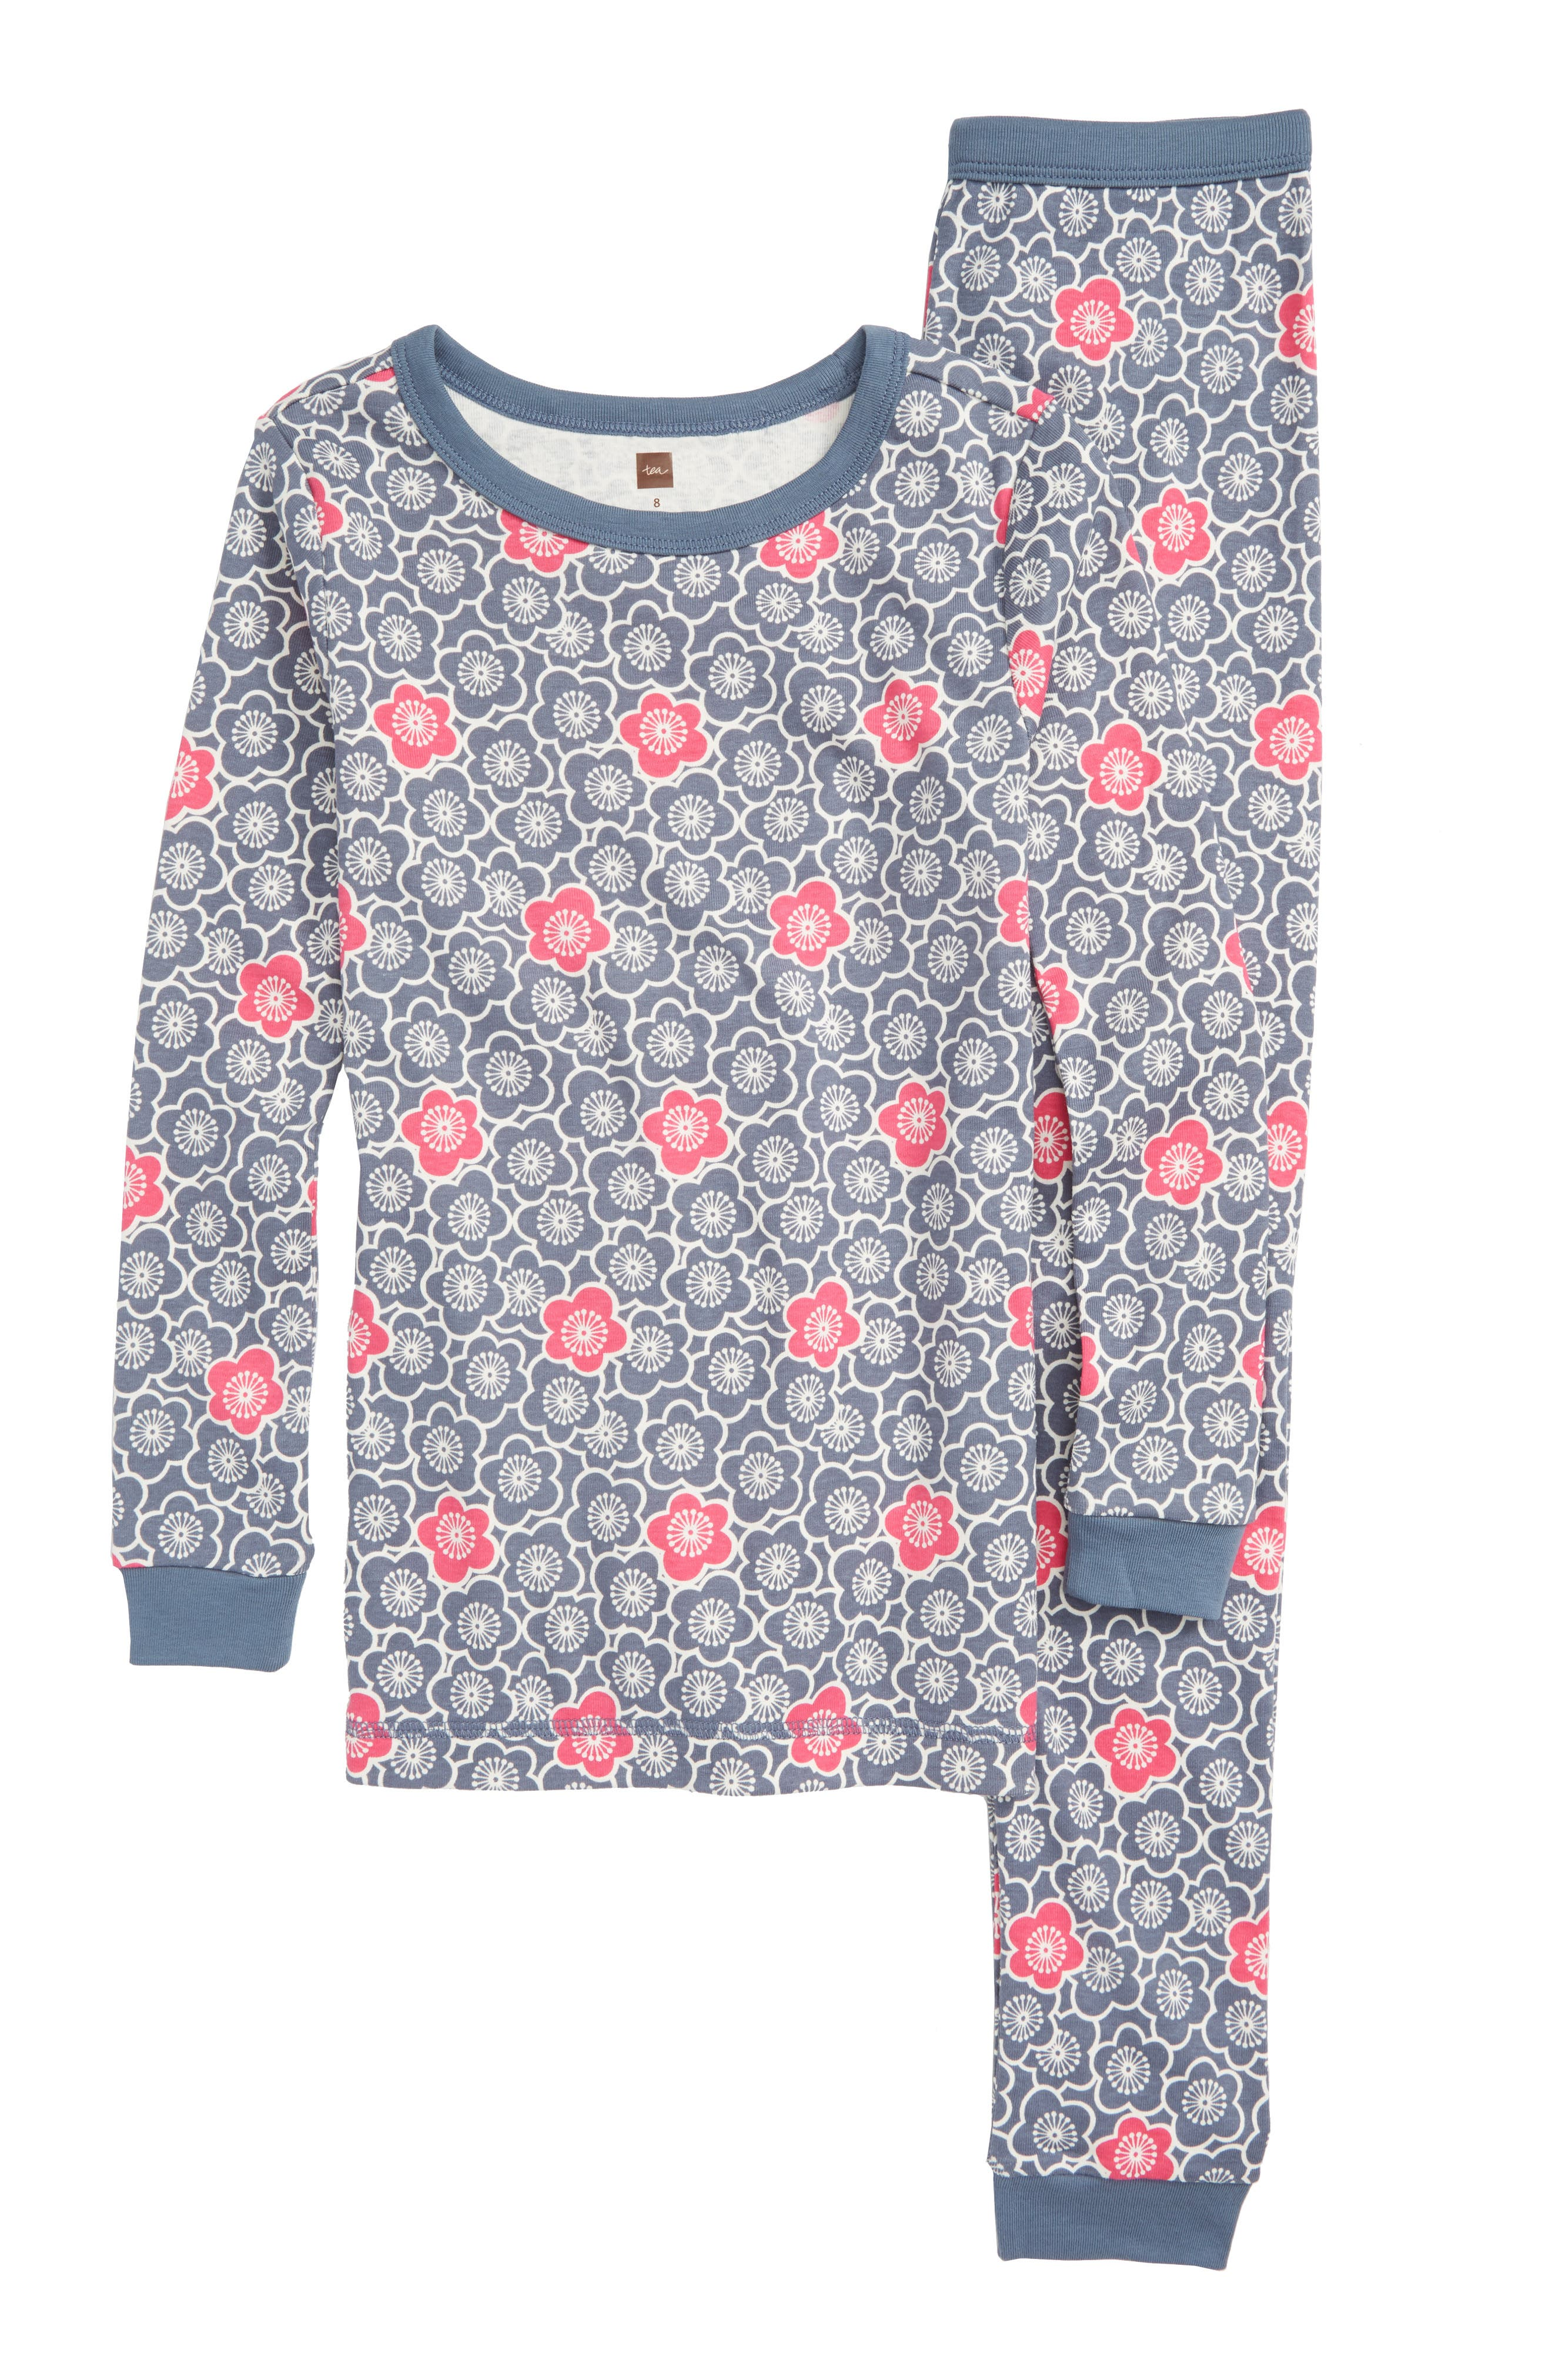 Fitted Two-Piece Pajamas,                         Main,                         color, UMI FLORAL